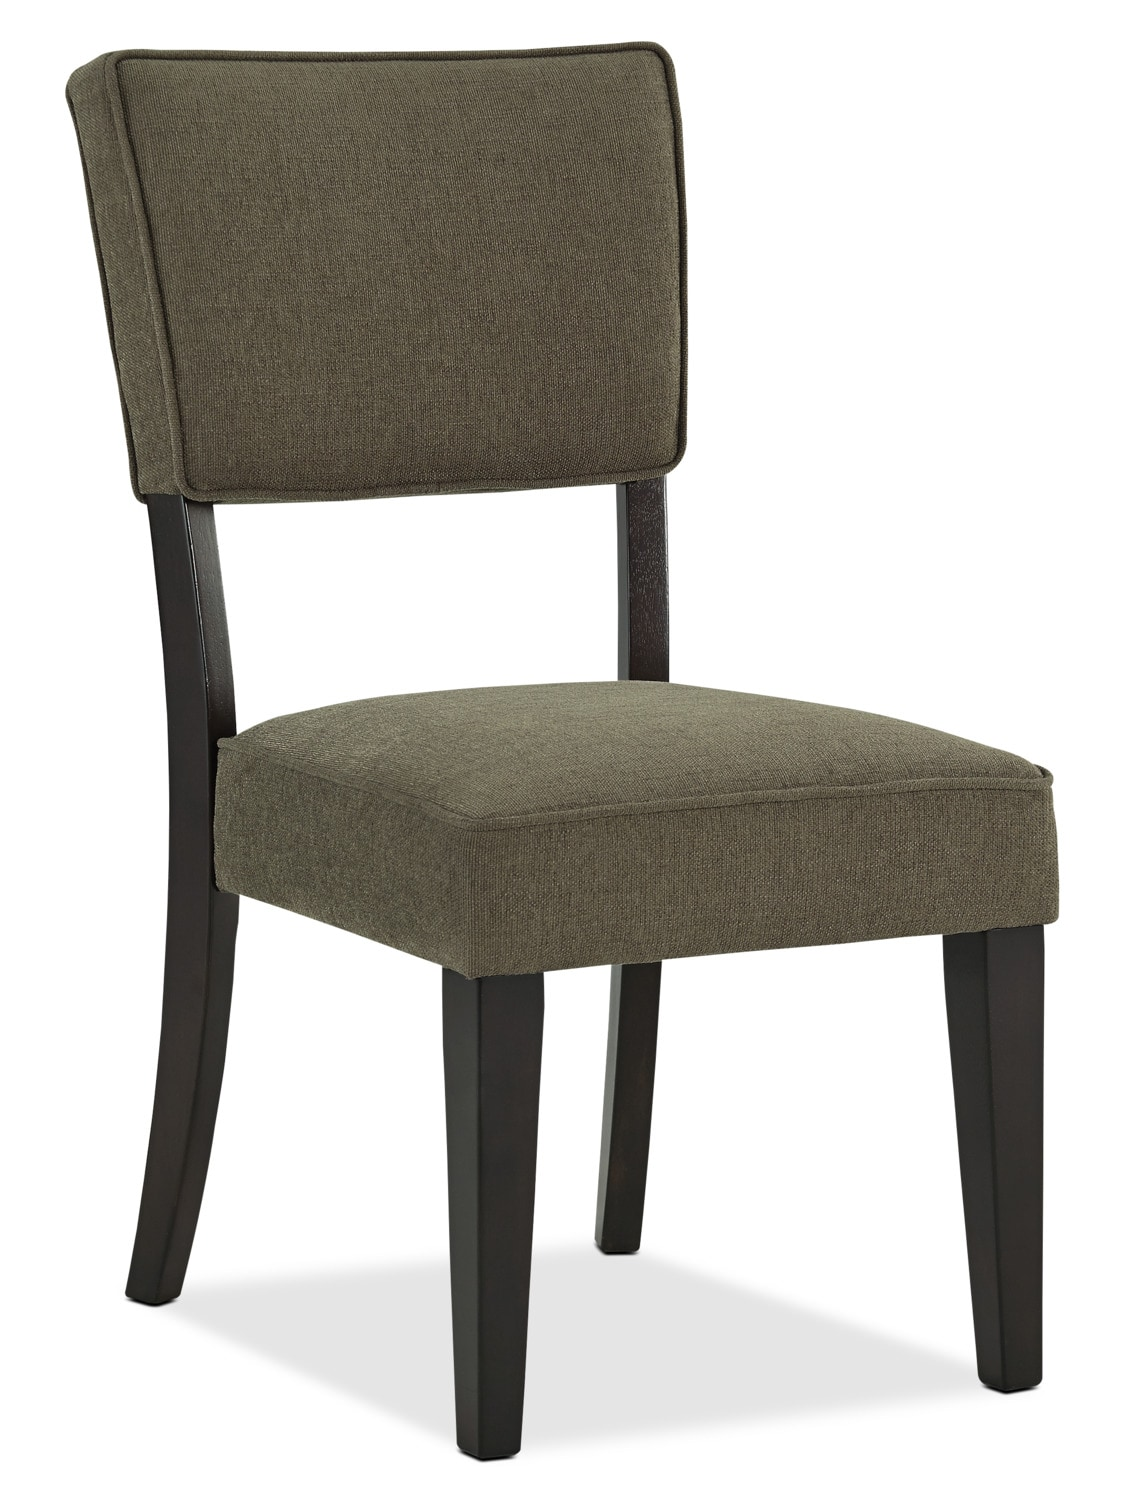 Dining chairs the brick for Upholstered dining chairs for sale